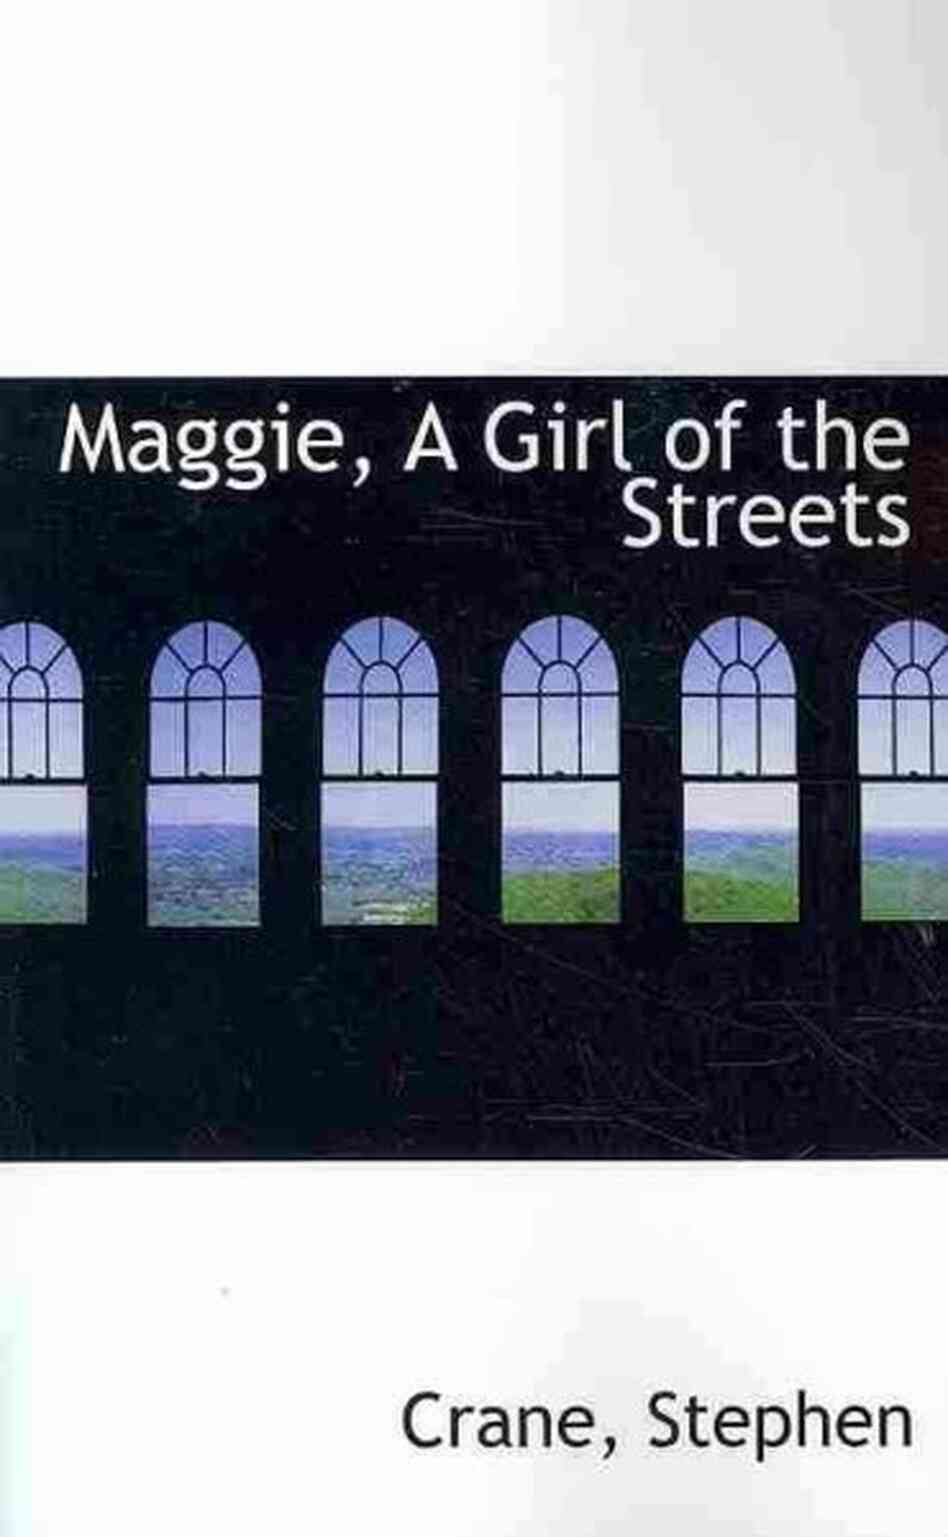 maggie a girl of the streets essay stephen crane s maggie a girl of the streets essay